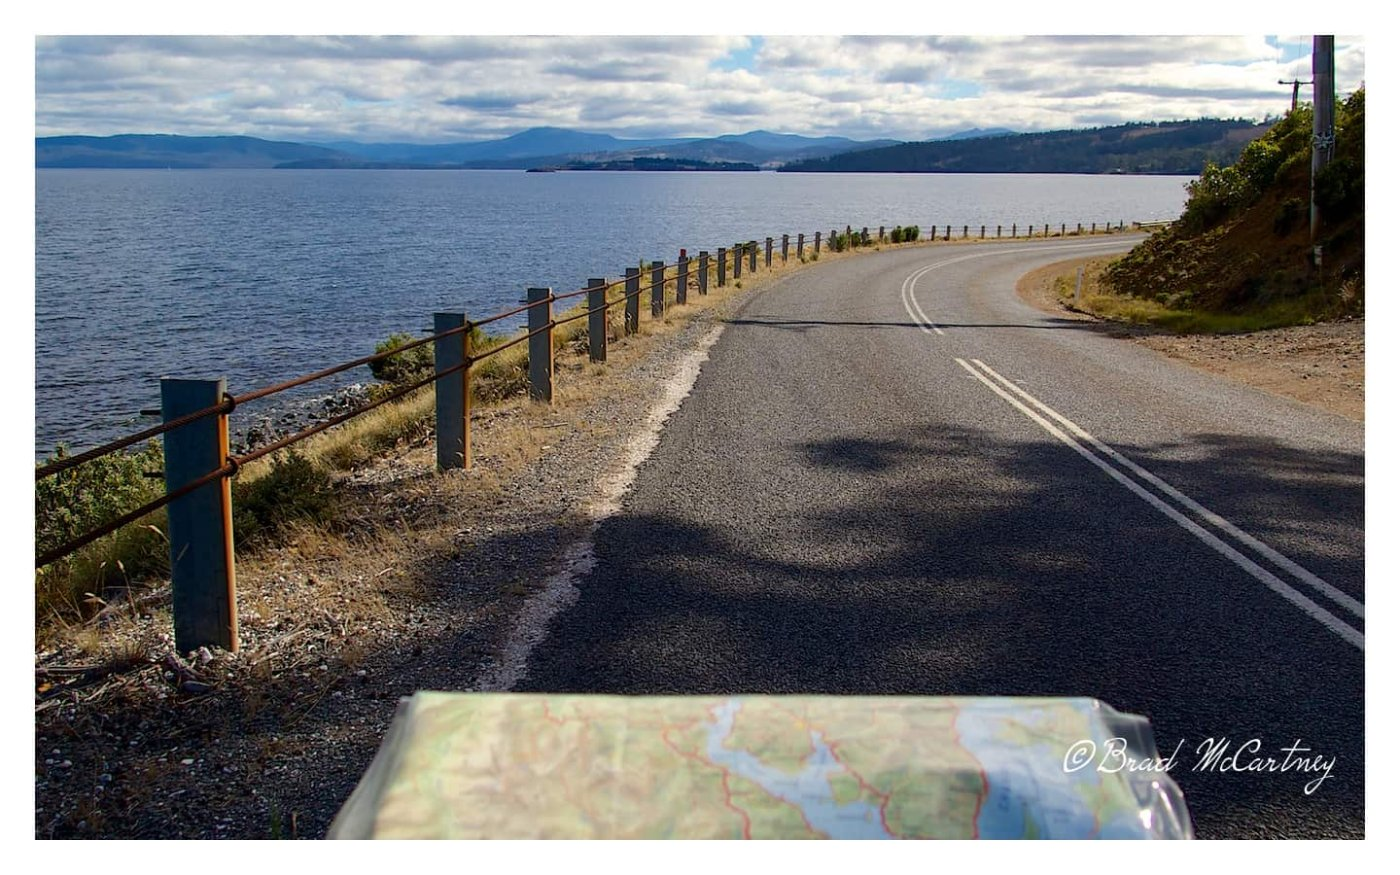 The road heading south with great views of D'Entrecasteaux Channel